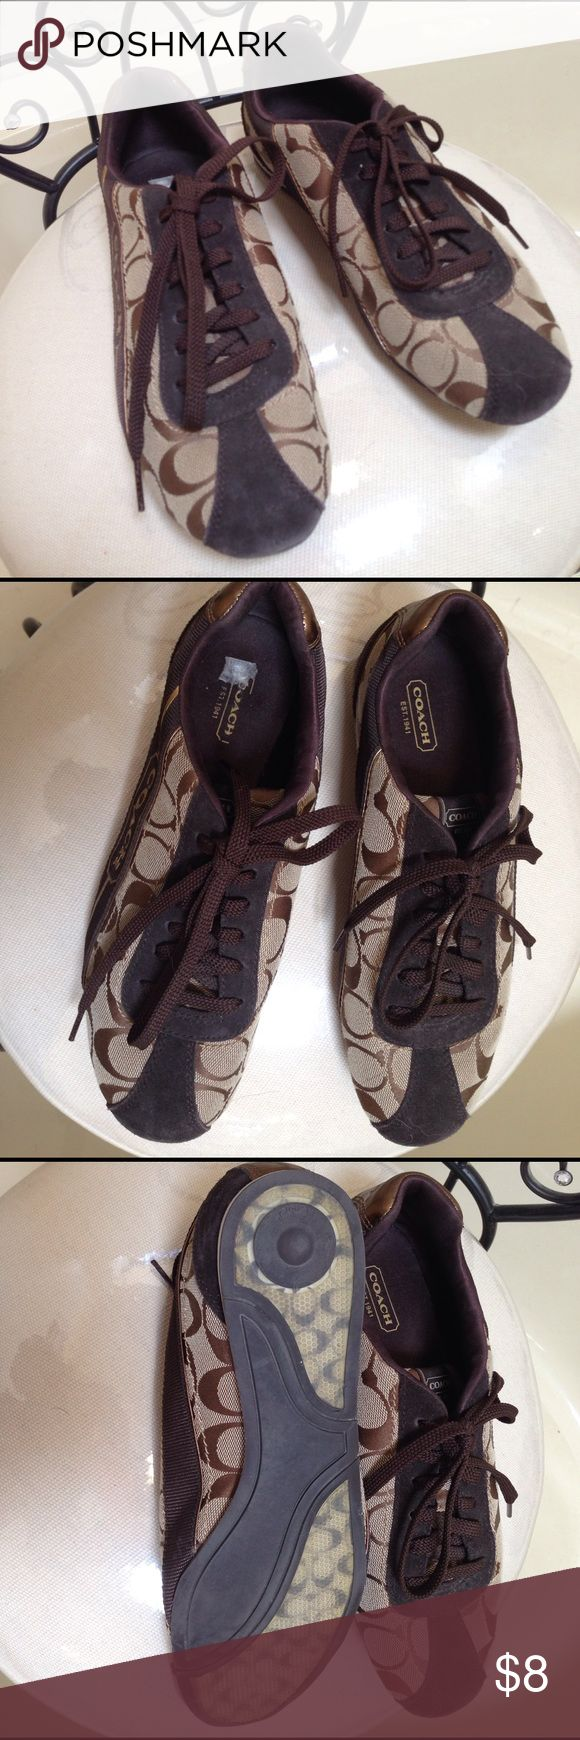 Coach tennis shoes Brown tennis shoes with Coach logo. Worn a few times but in very good condition Coach Shoes Sneakers